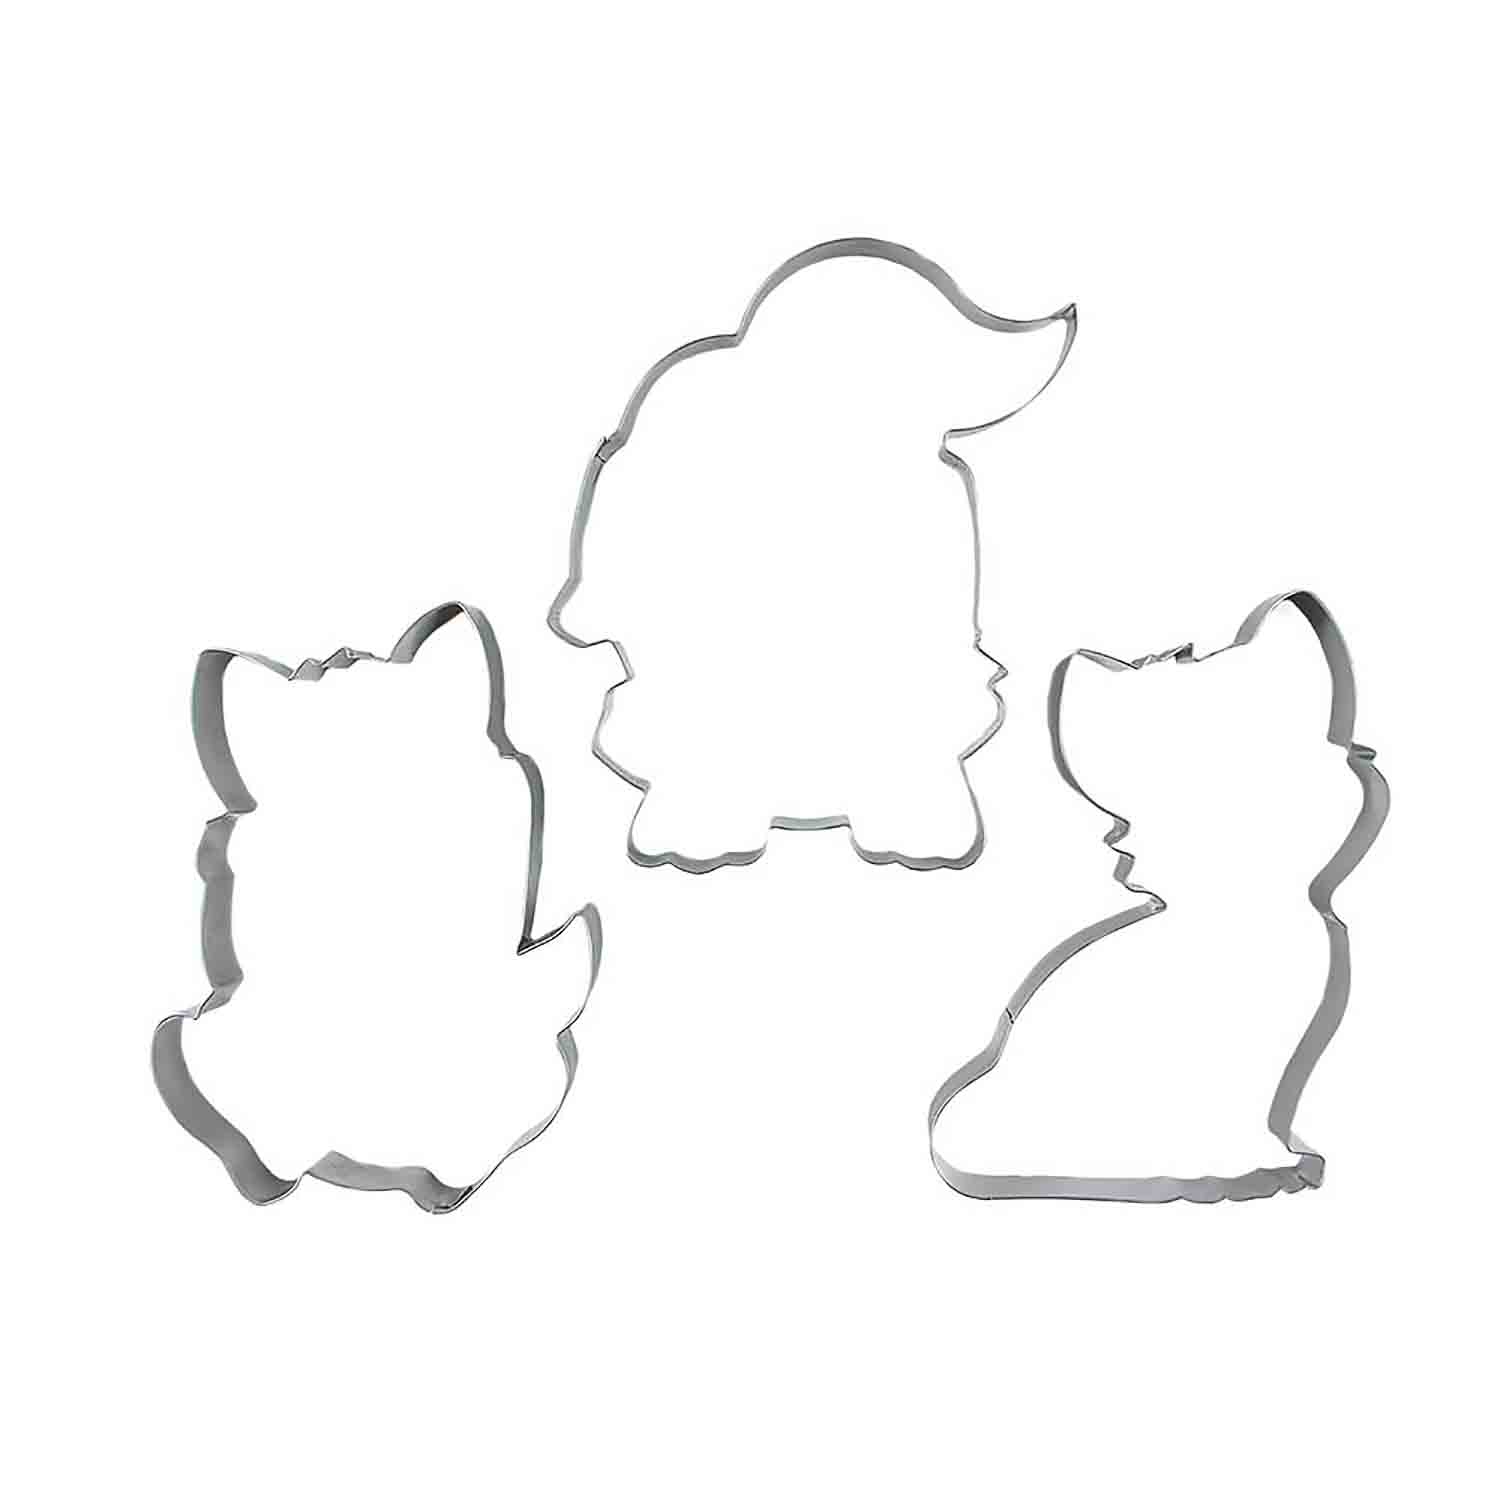 Palm Pets Puppy, Kitten or Fox Cookie Cutter Set by The Floured Canvas